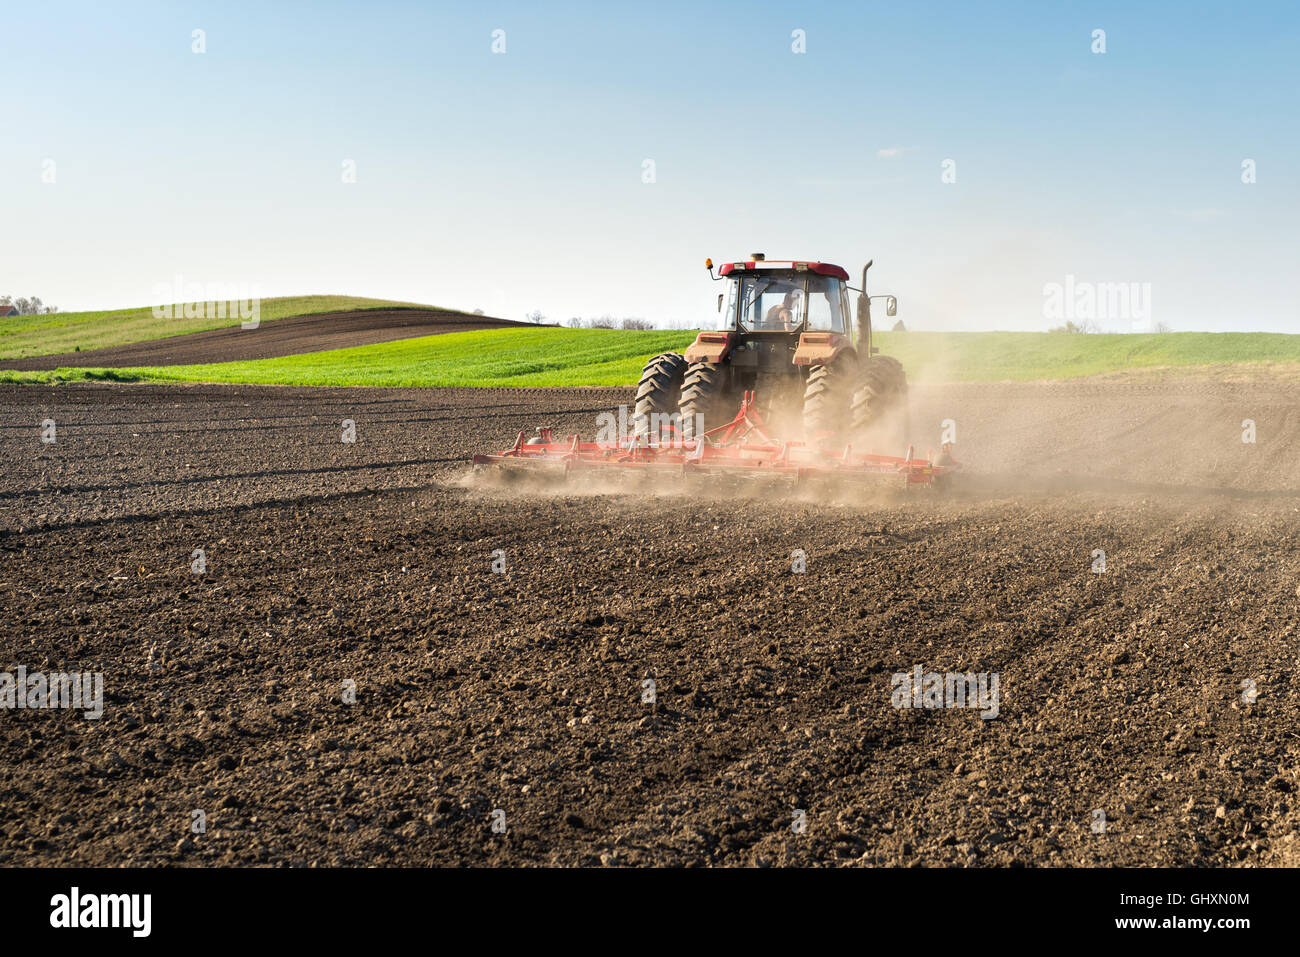 Tractor preparing land for sowing - Stock Image